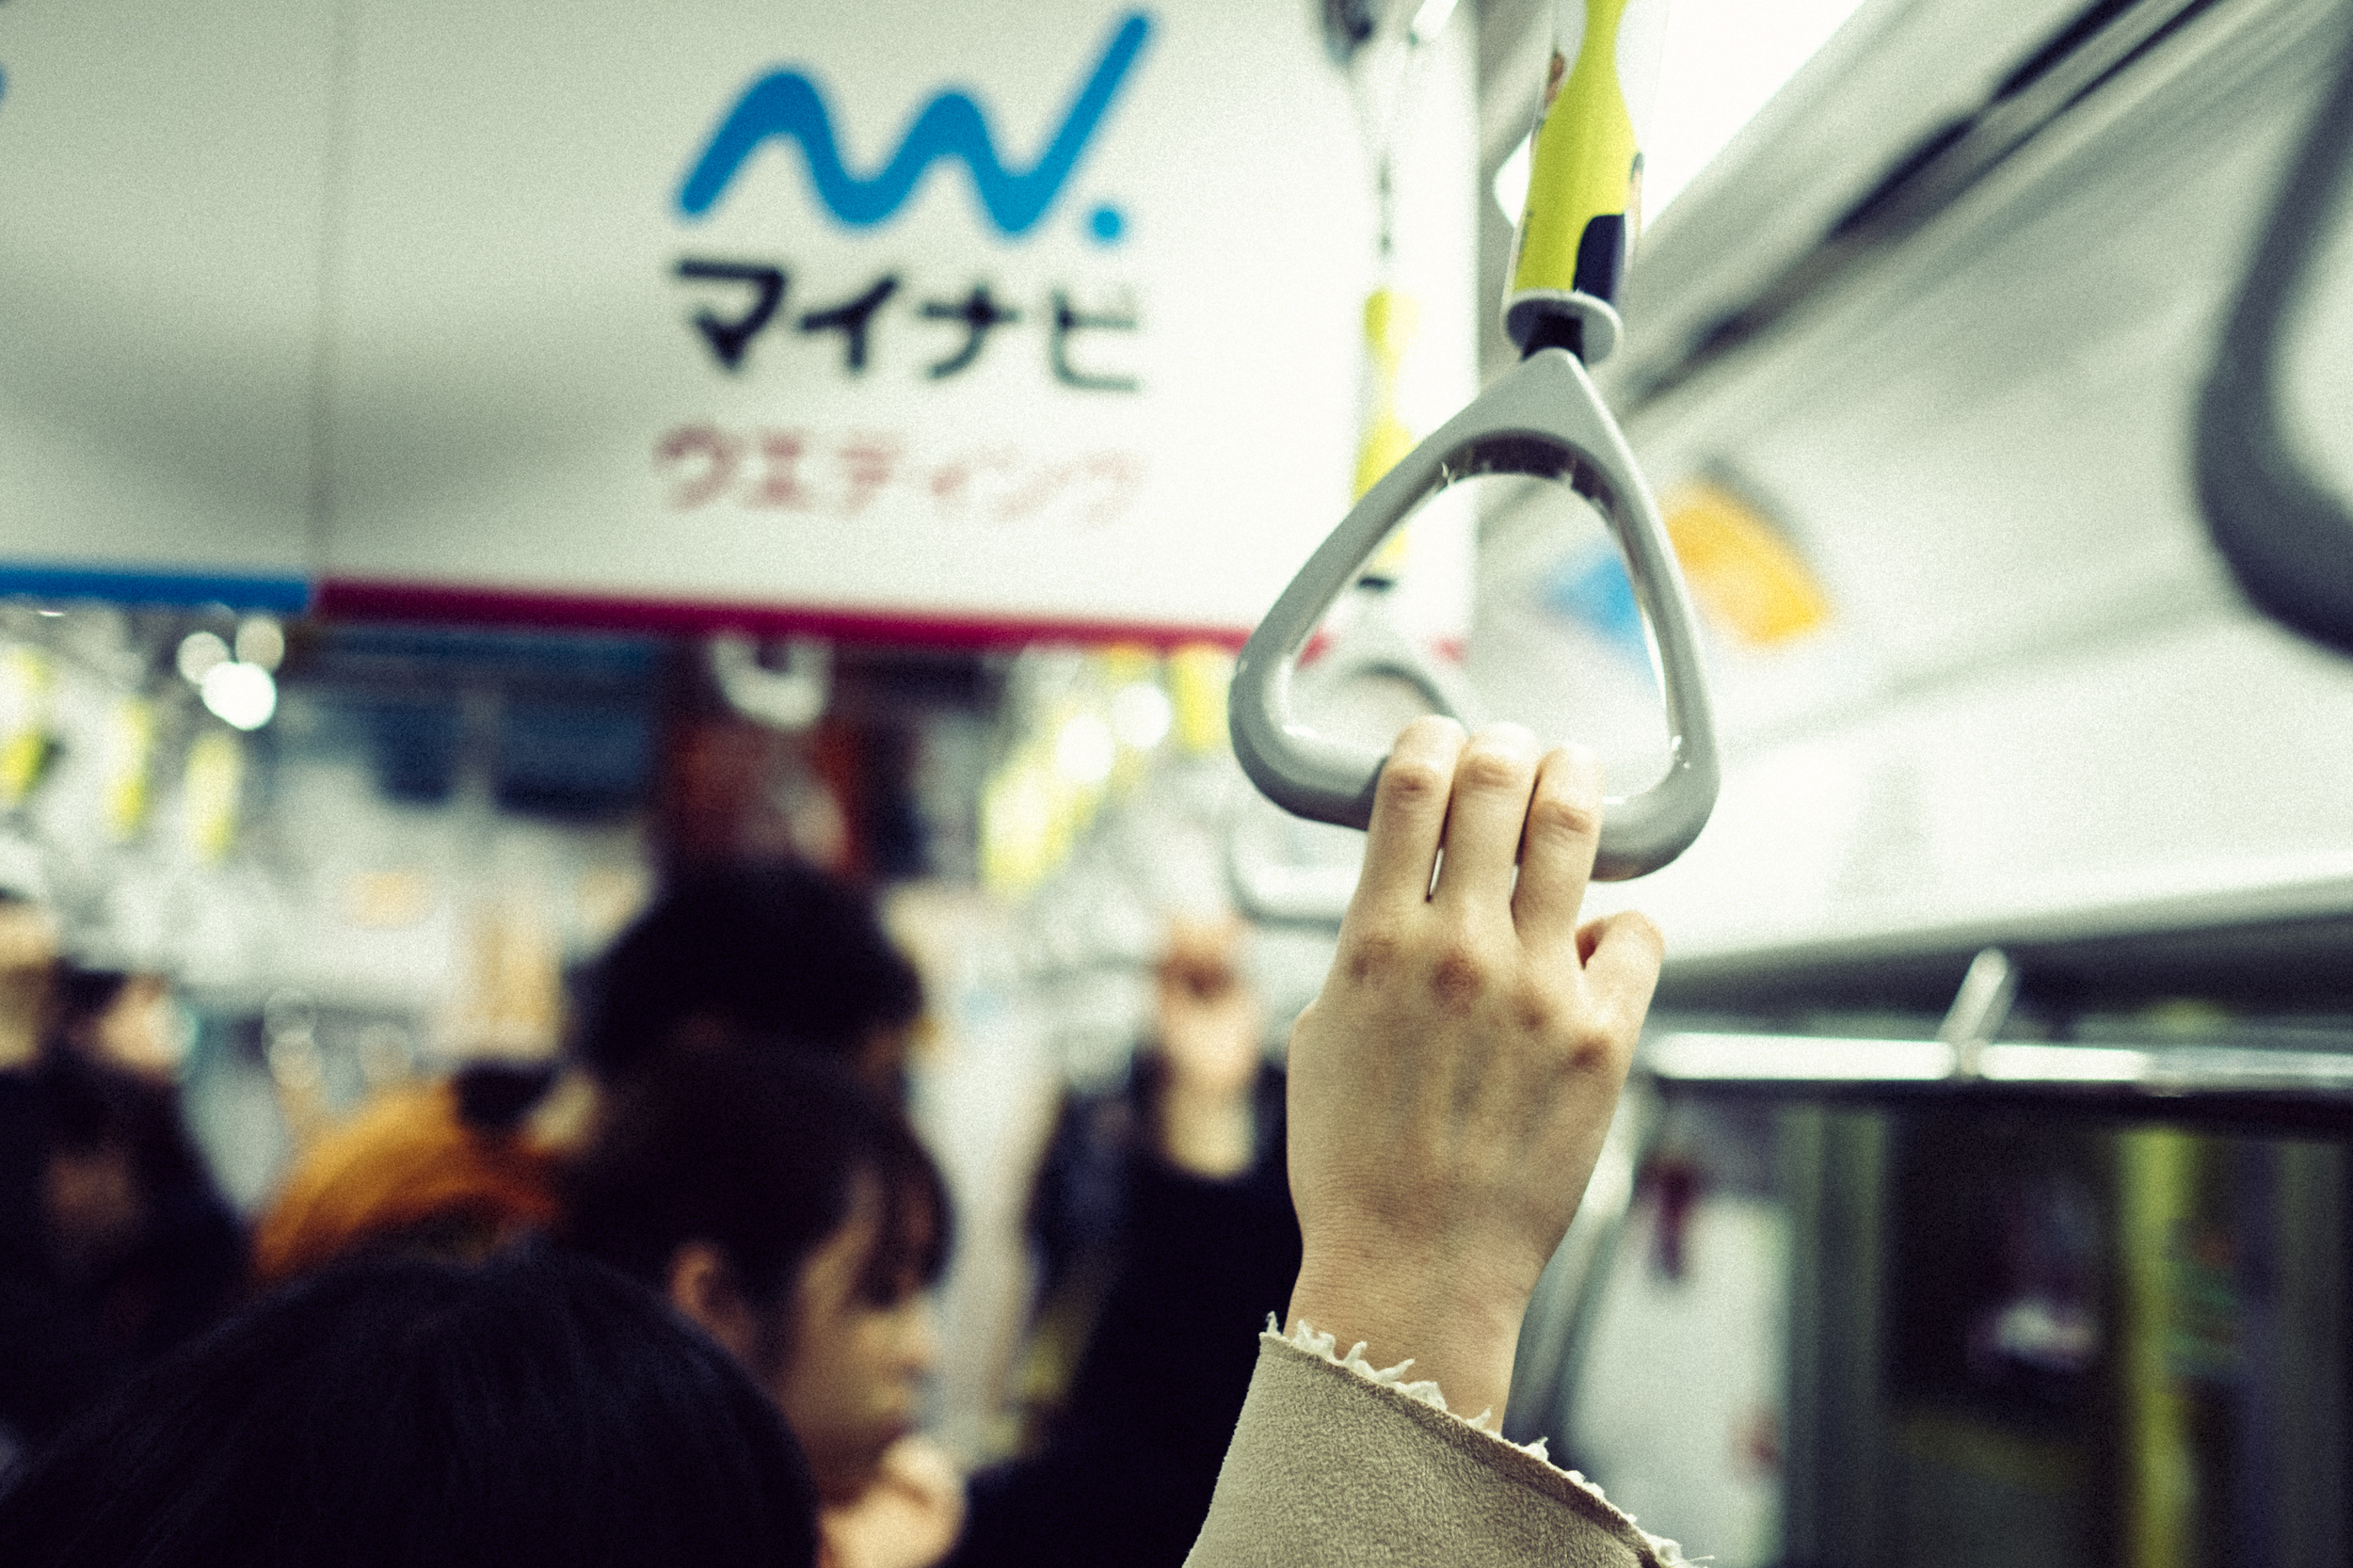 Subway, Ginza Line, Tokyo. F/1.4 1/180 second, ISO 200,   23mm.